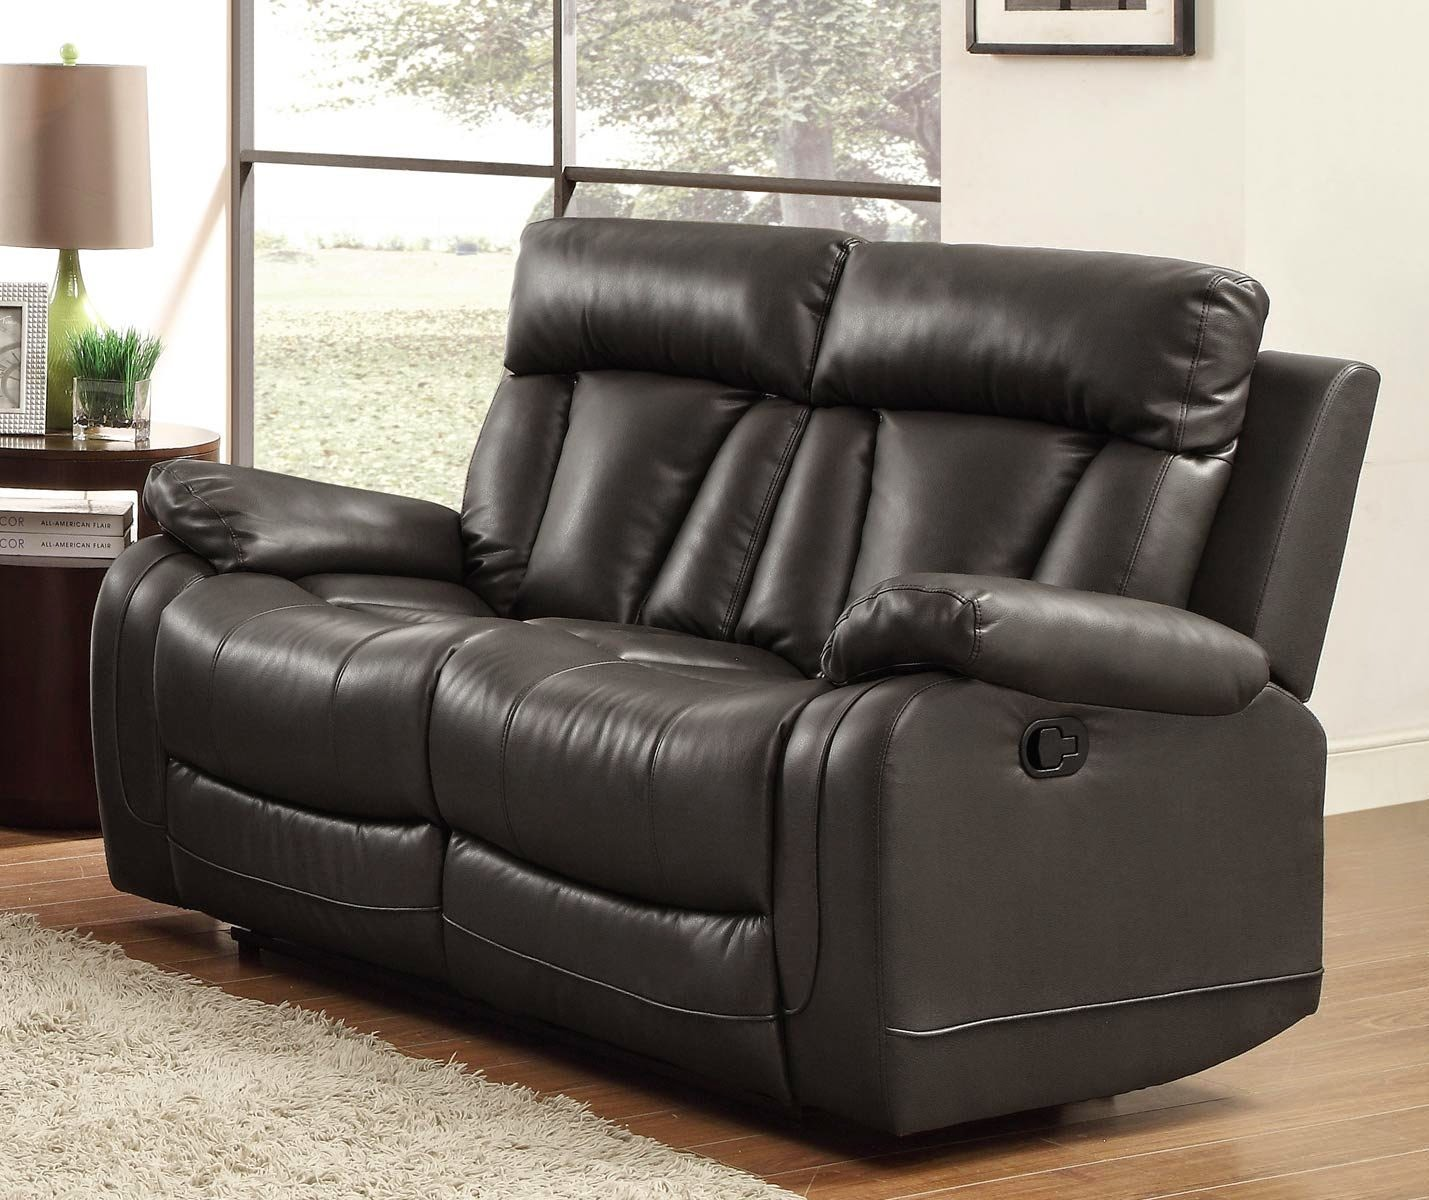 Cheap recliner sofas for sale black leather reclining for Affordable couches for sale